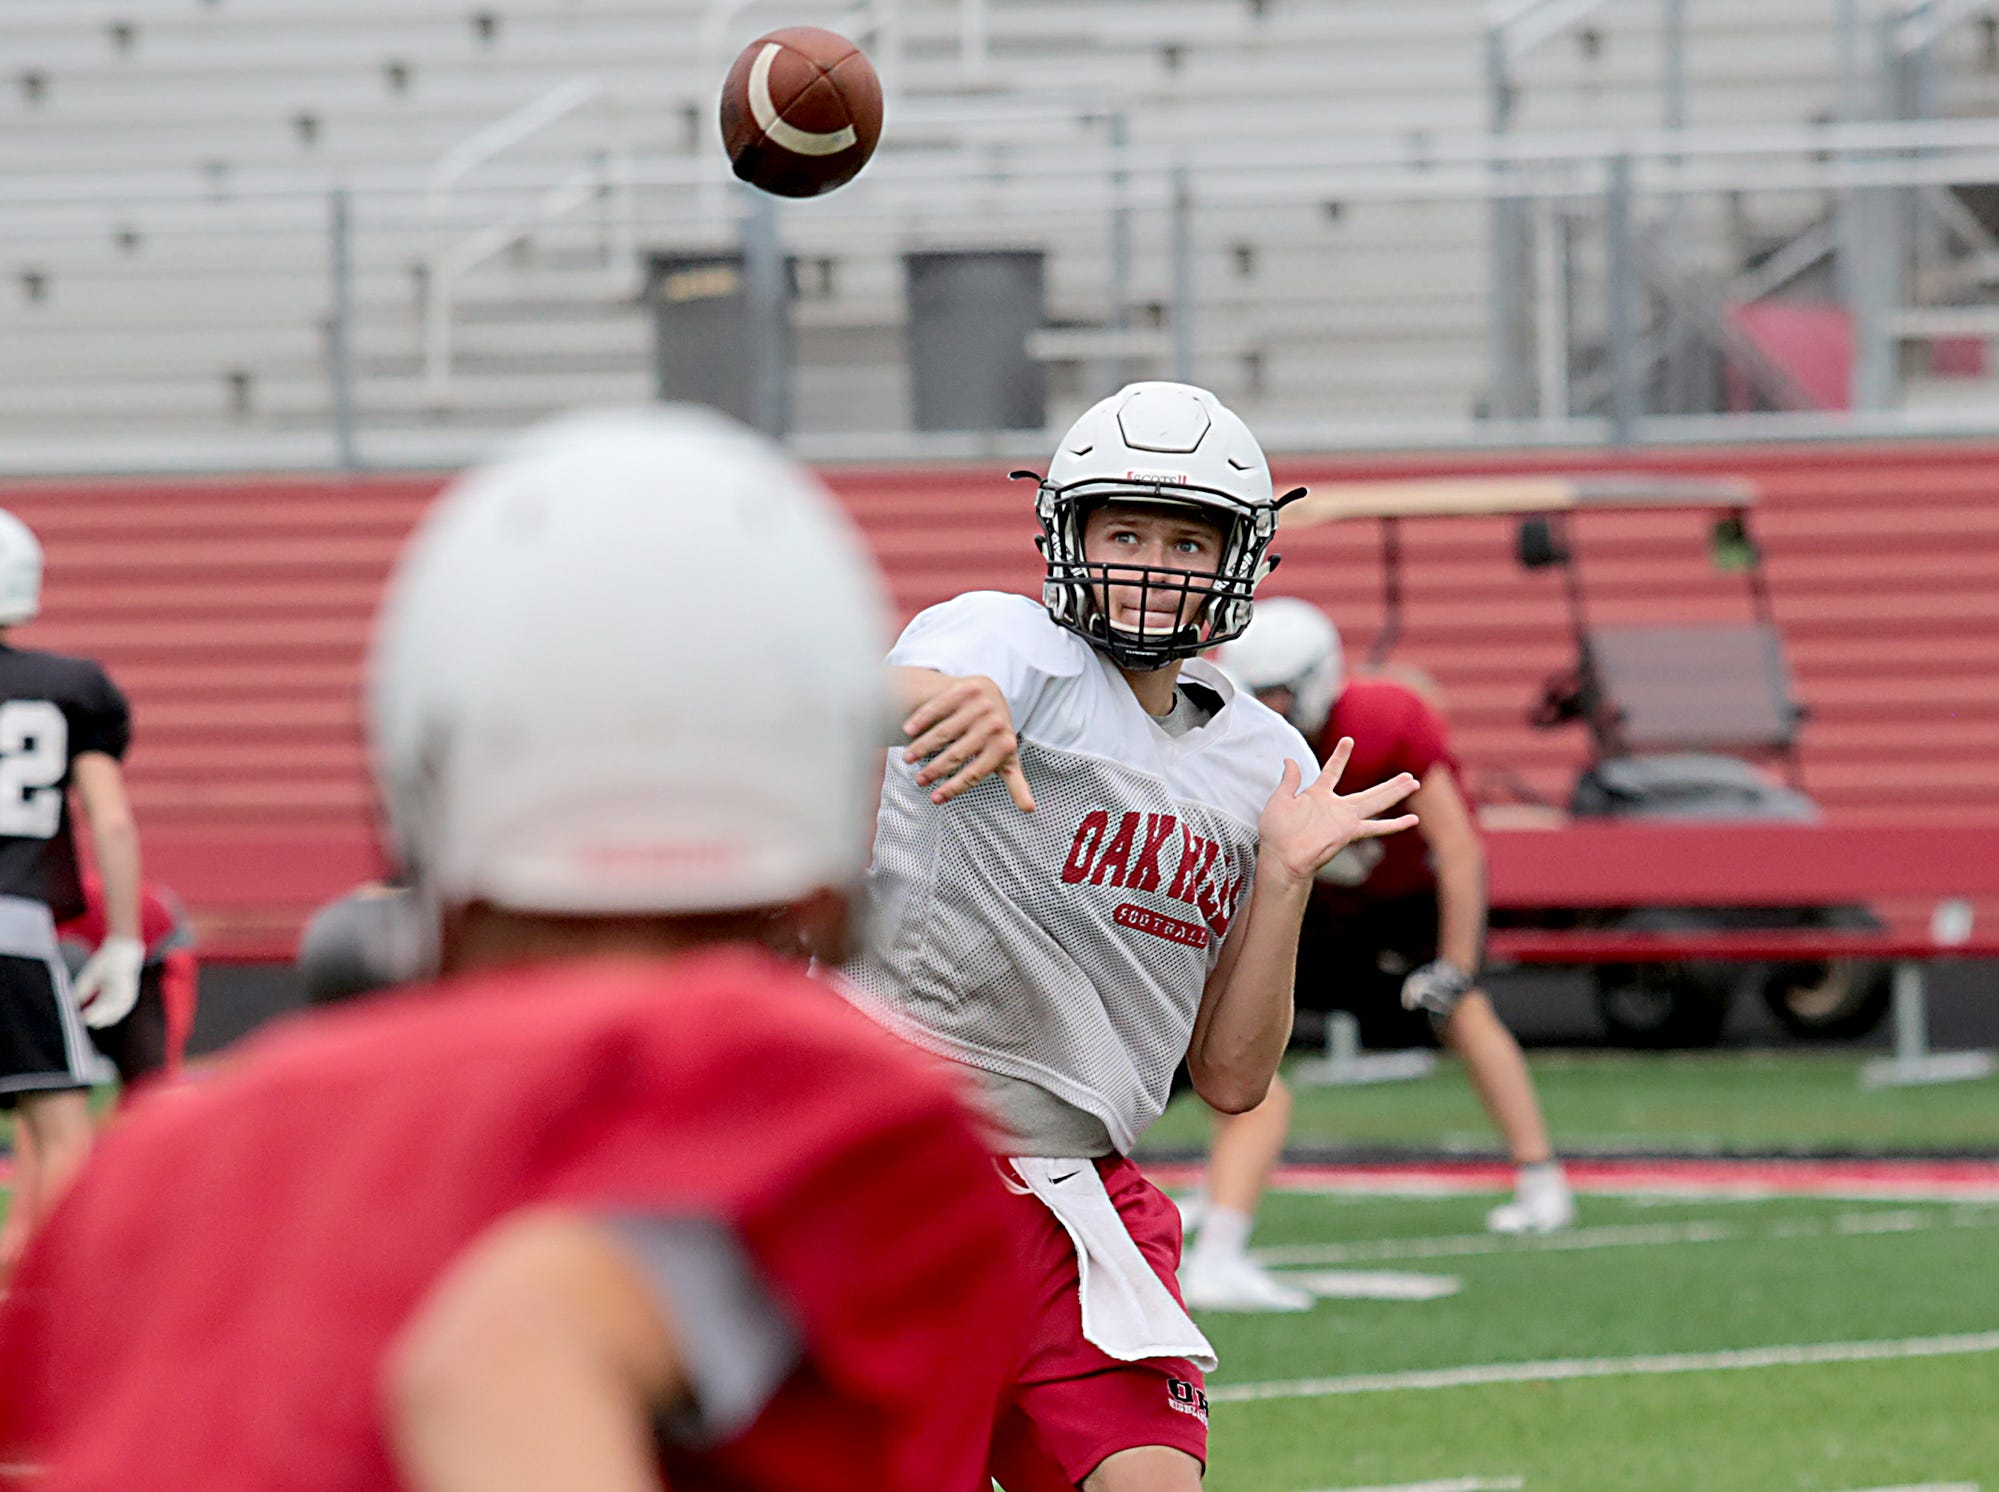 Oak Hills quarterback Ethan Myers throws a pass during practice Wednesday, Aug. 1, 2018.